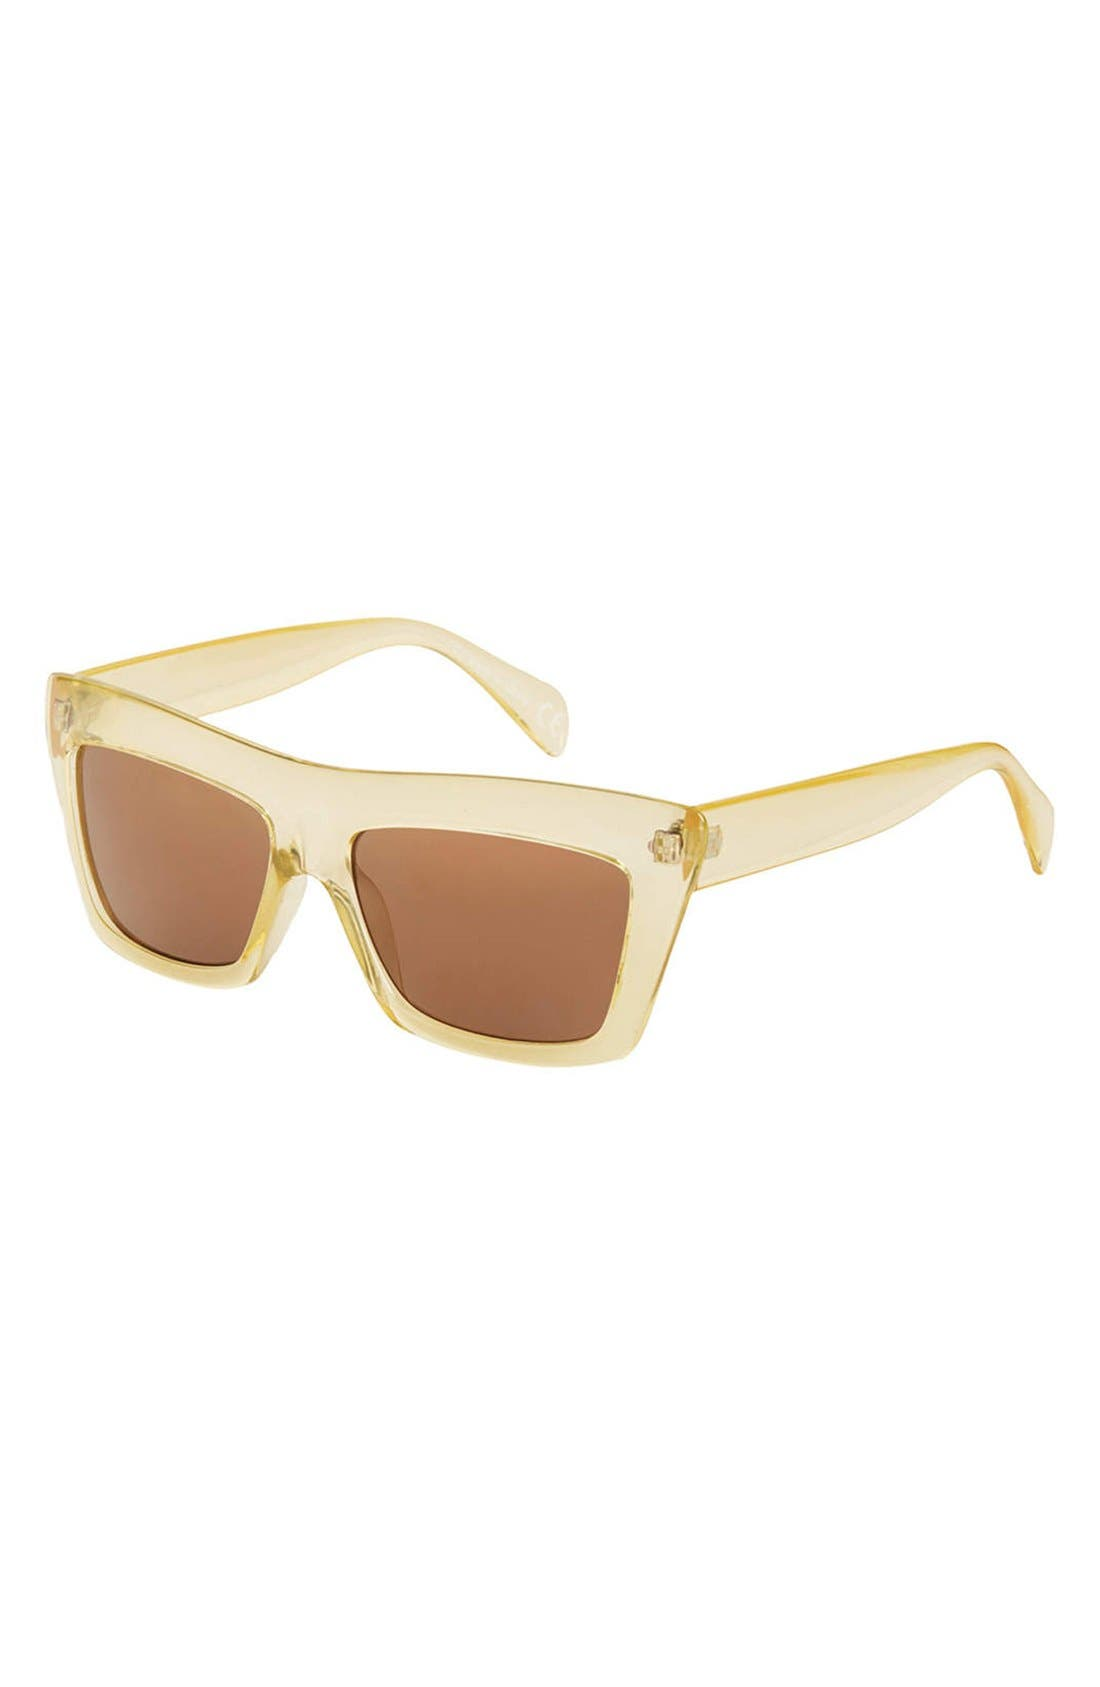 Alternate Image 1 Selected - Topshop 'Wicked' 55mm Clear Frame Sunglasses